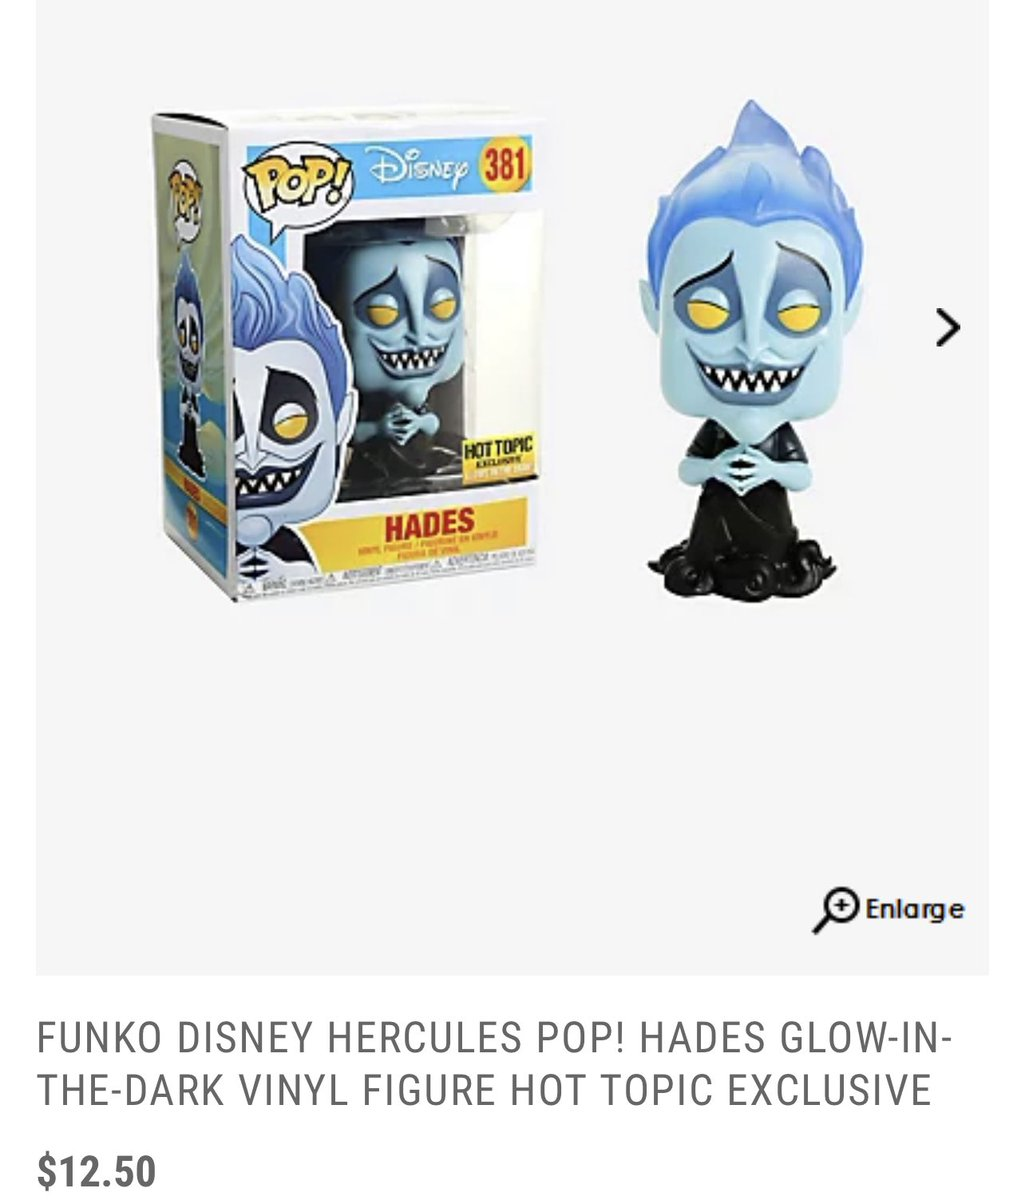 Hot Topic exclusive Hades is available on presale! Ships in April. .